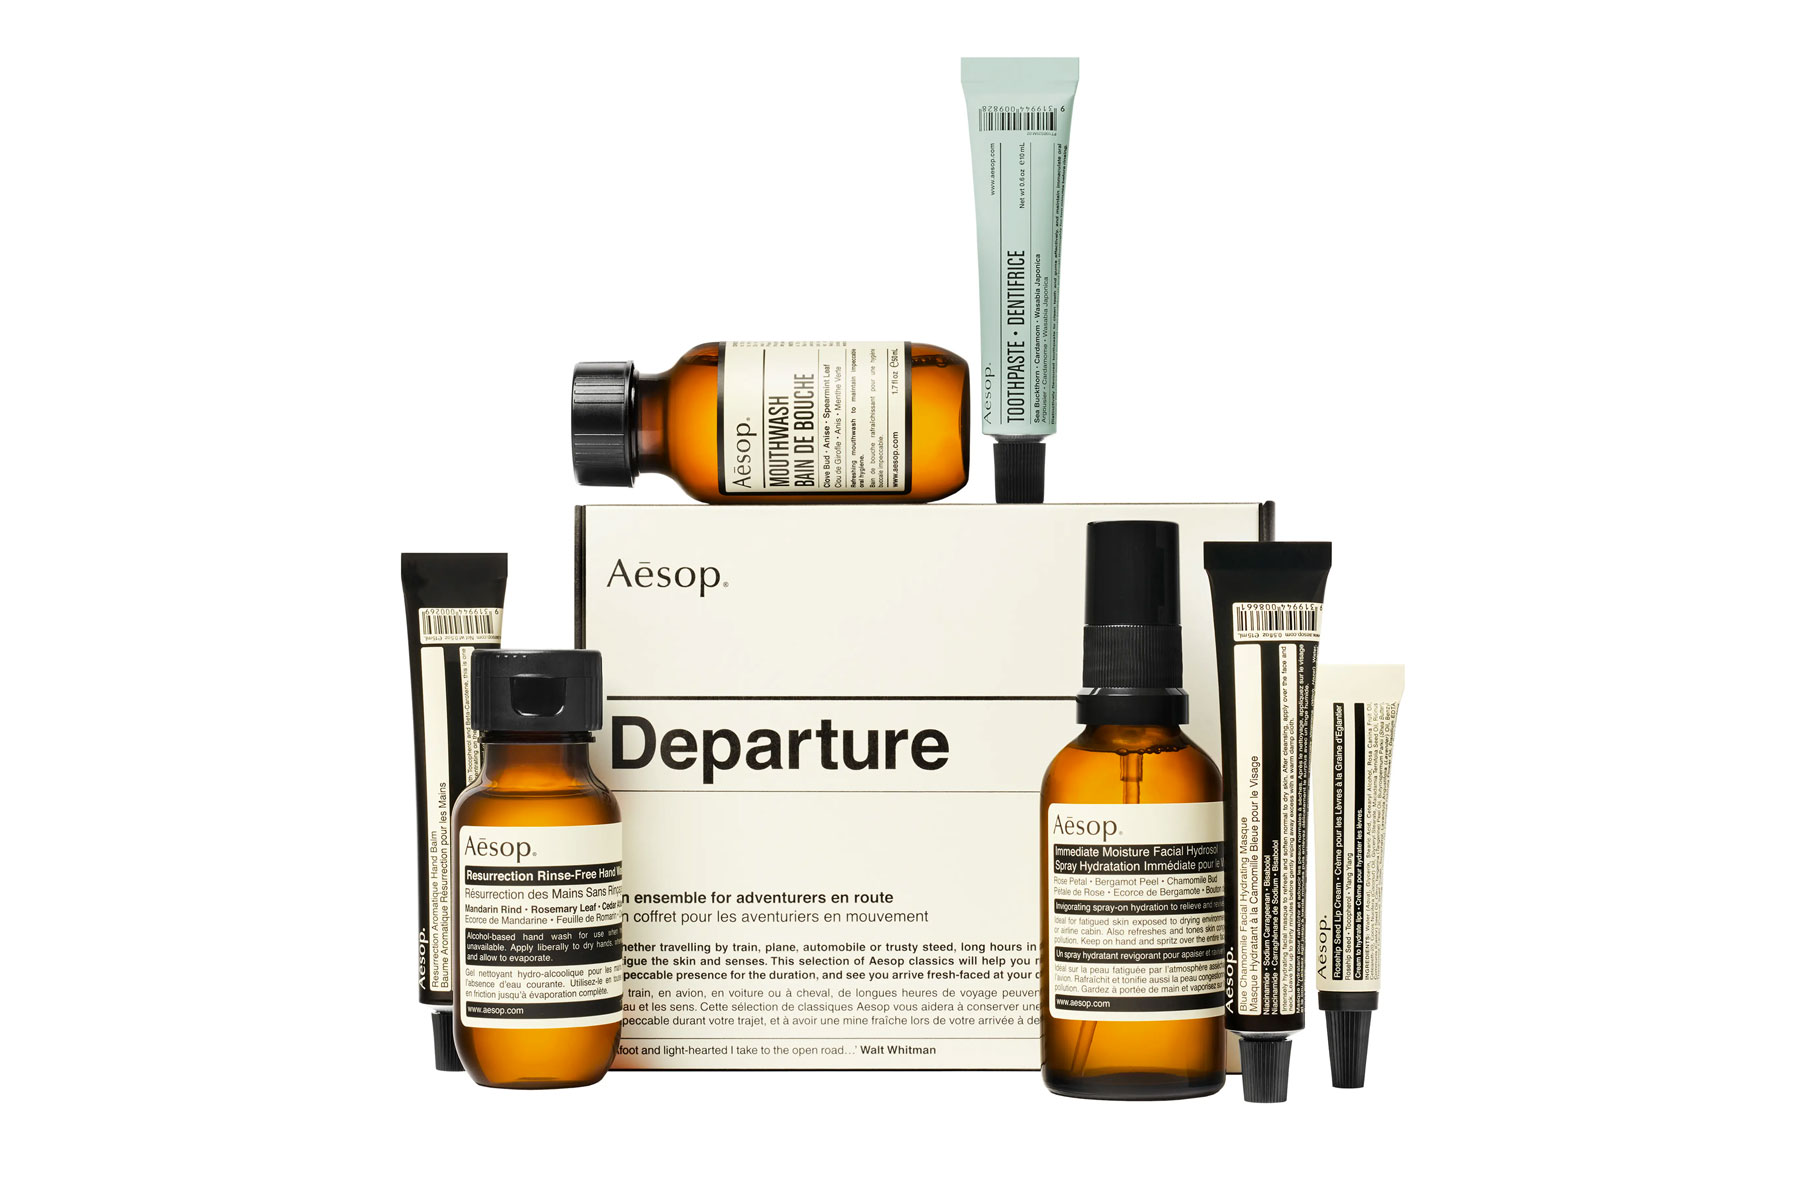 Aesop various toiletries kit